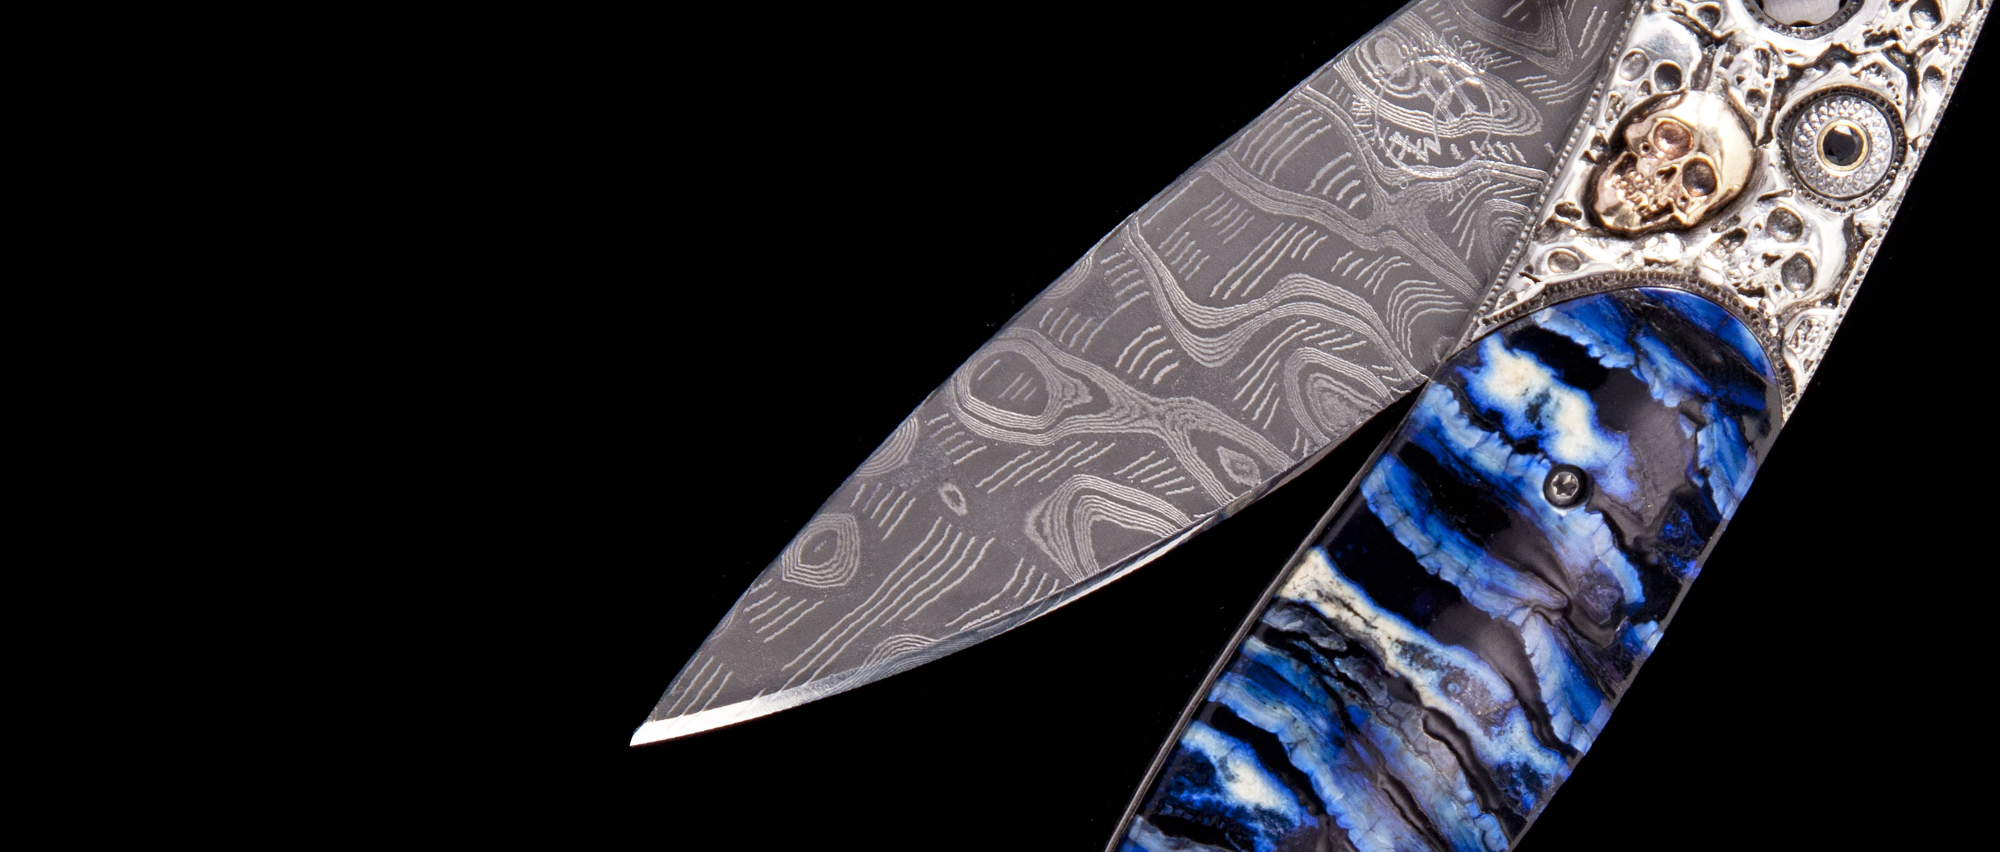 New William Henry Knives